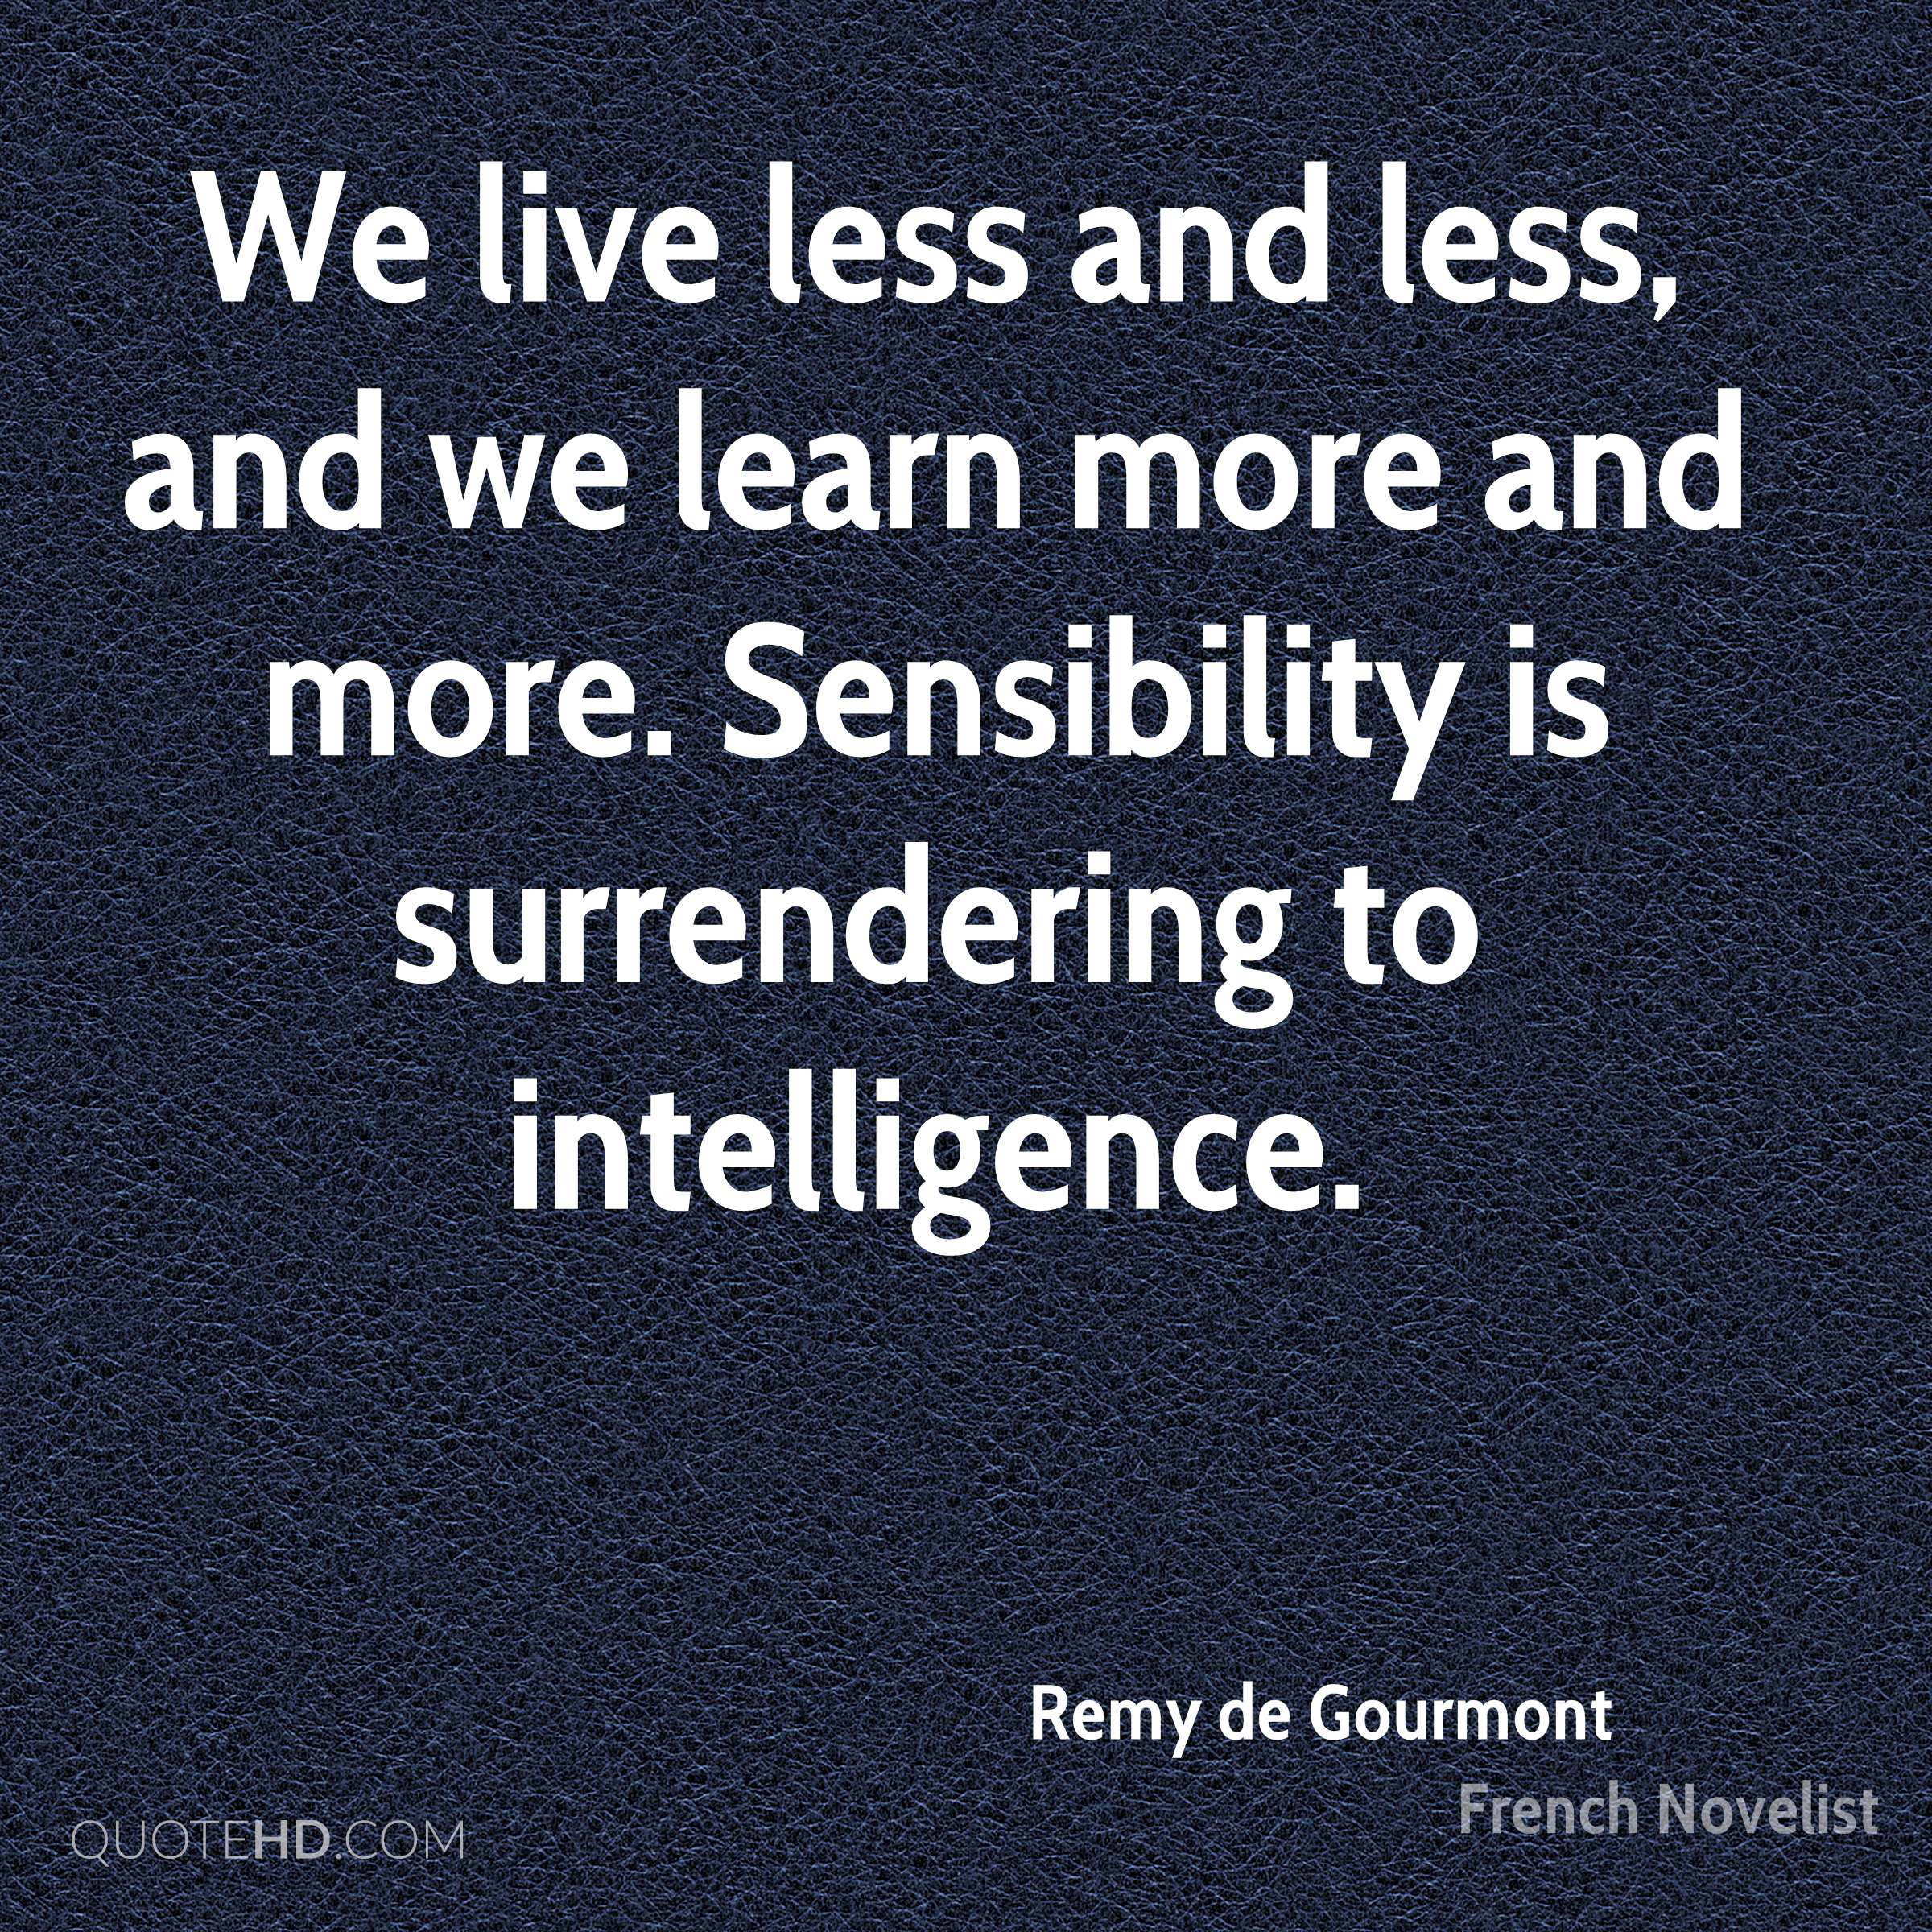 We live less and less, and we learn more and more. Sensibility is surrendering to intelligence.